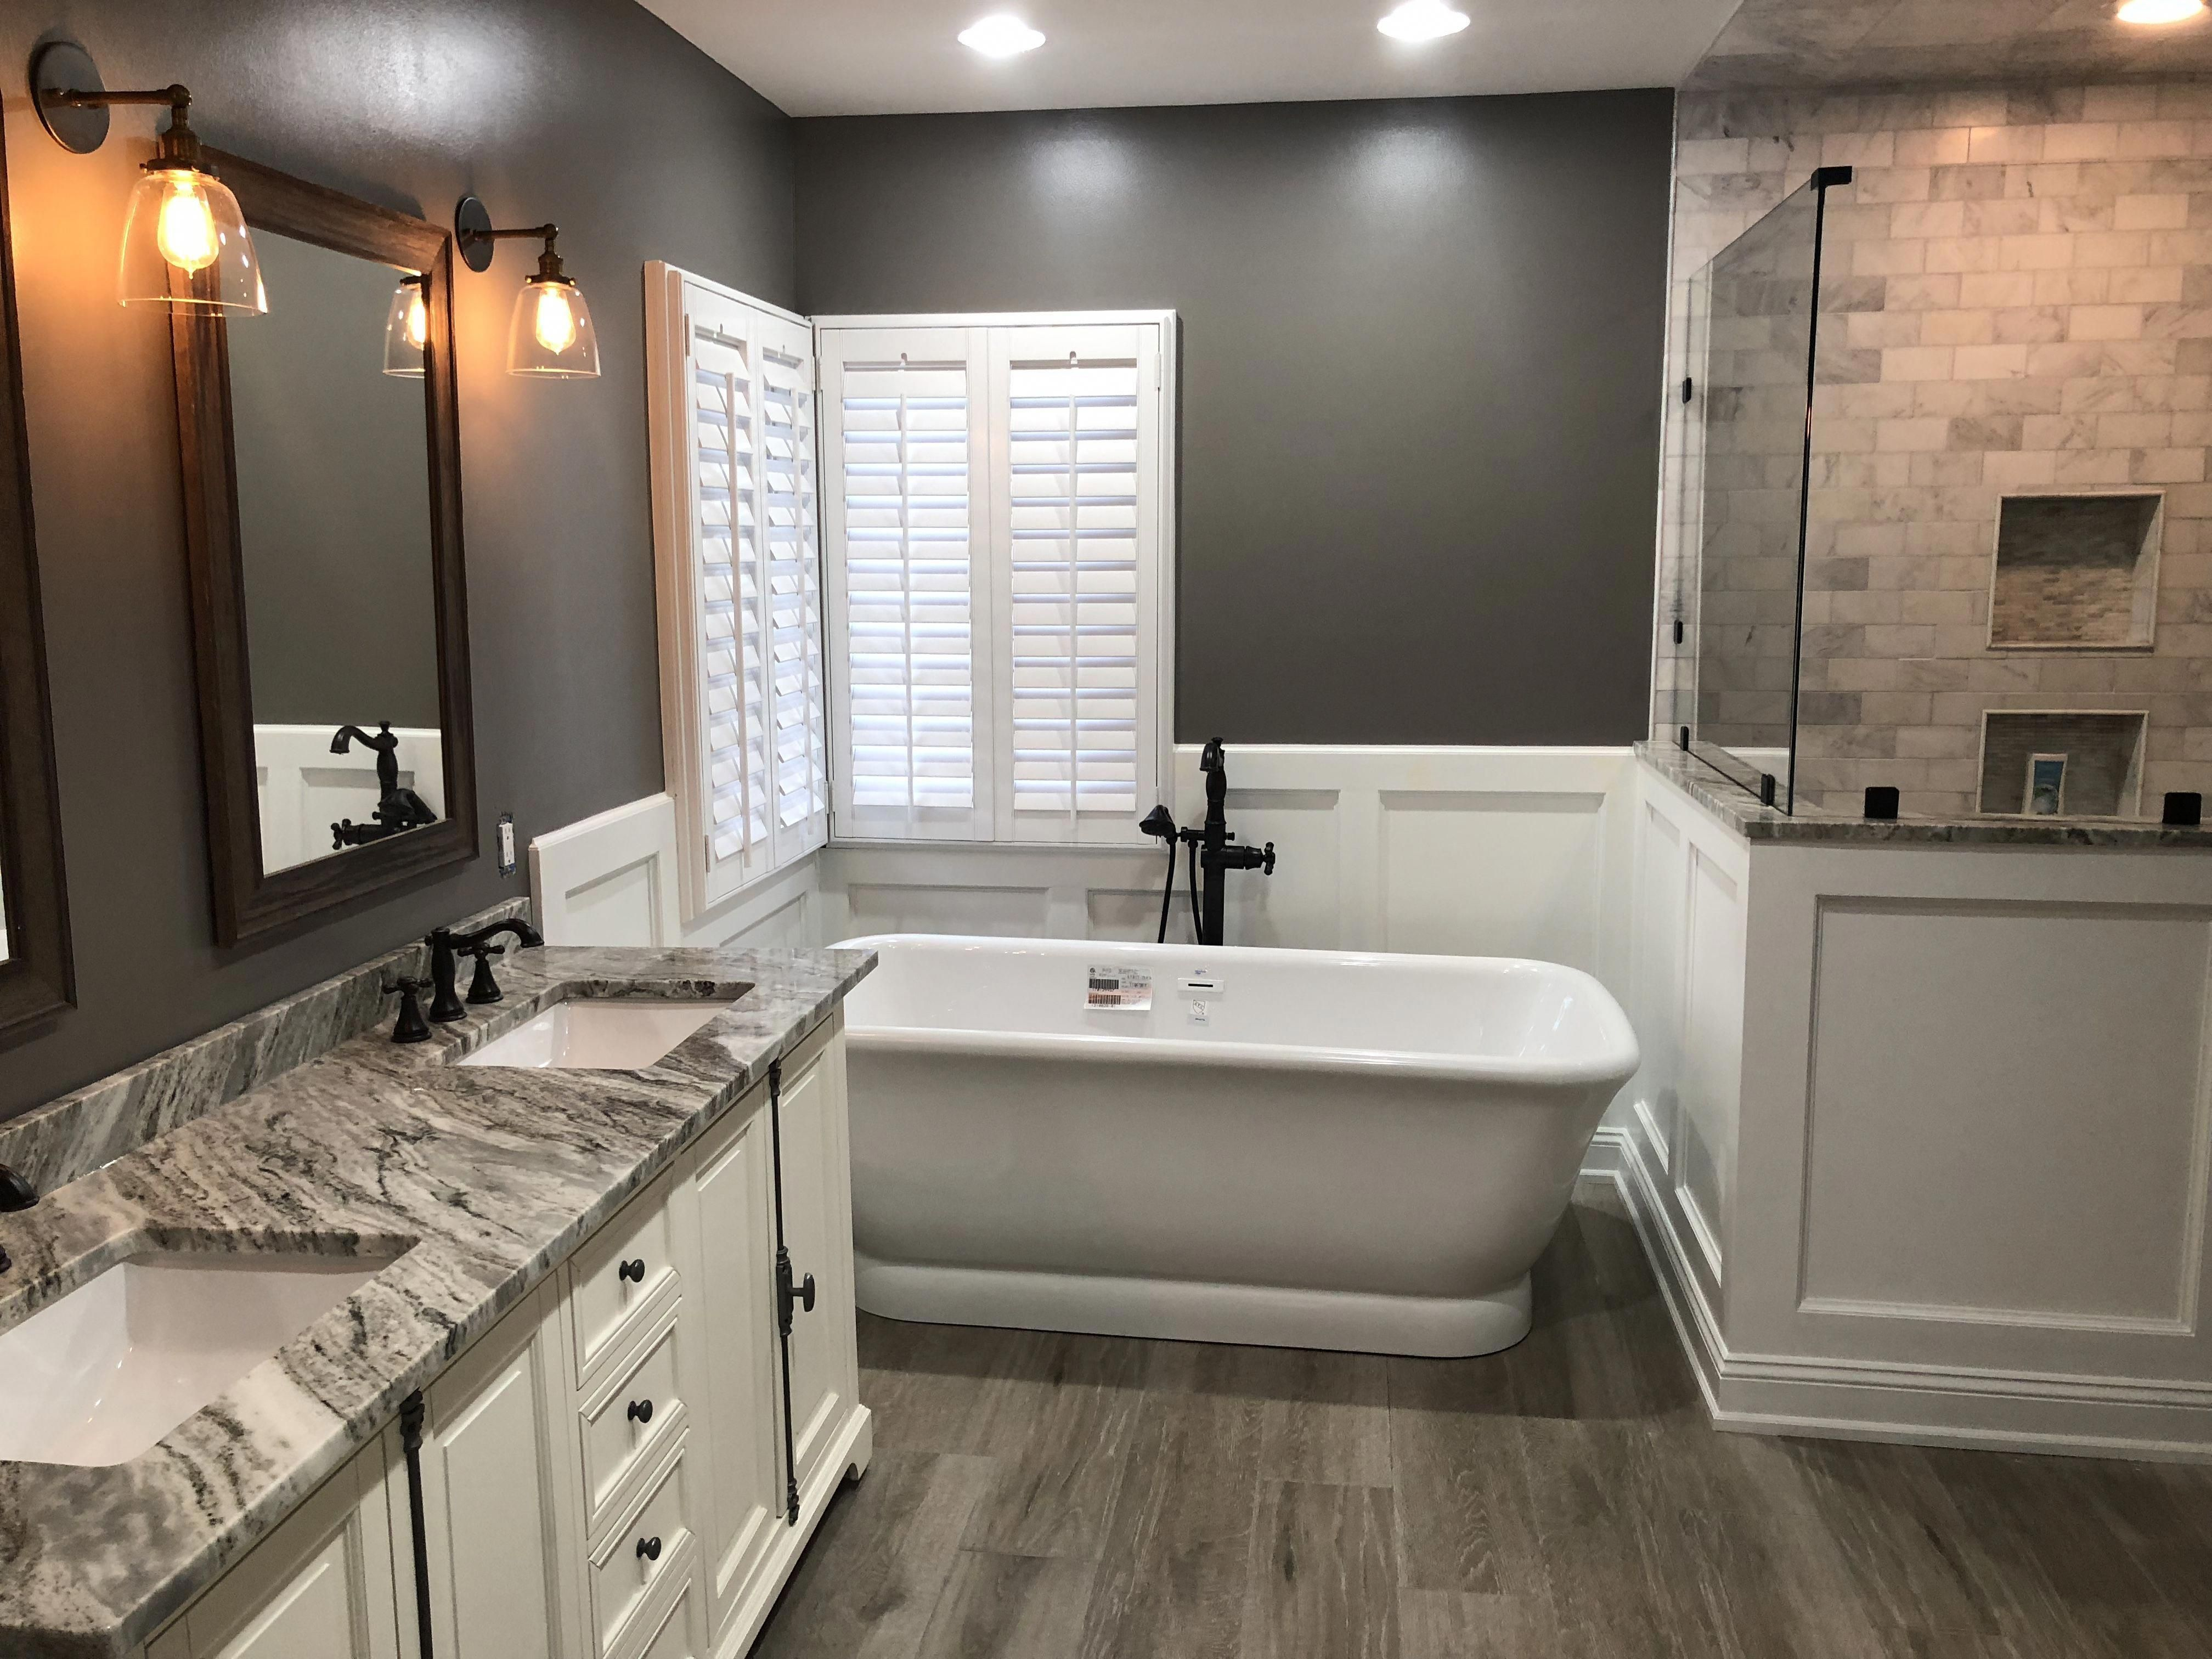 How Much Does A Kitchen Remodel Cost Simple Bathroom Remodel Simple Bathroom Small Bathroom Remodel